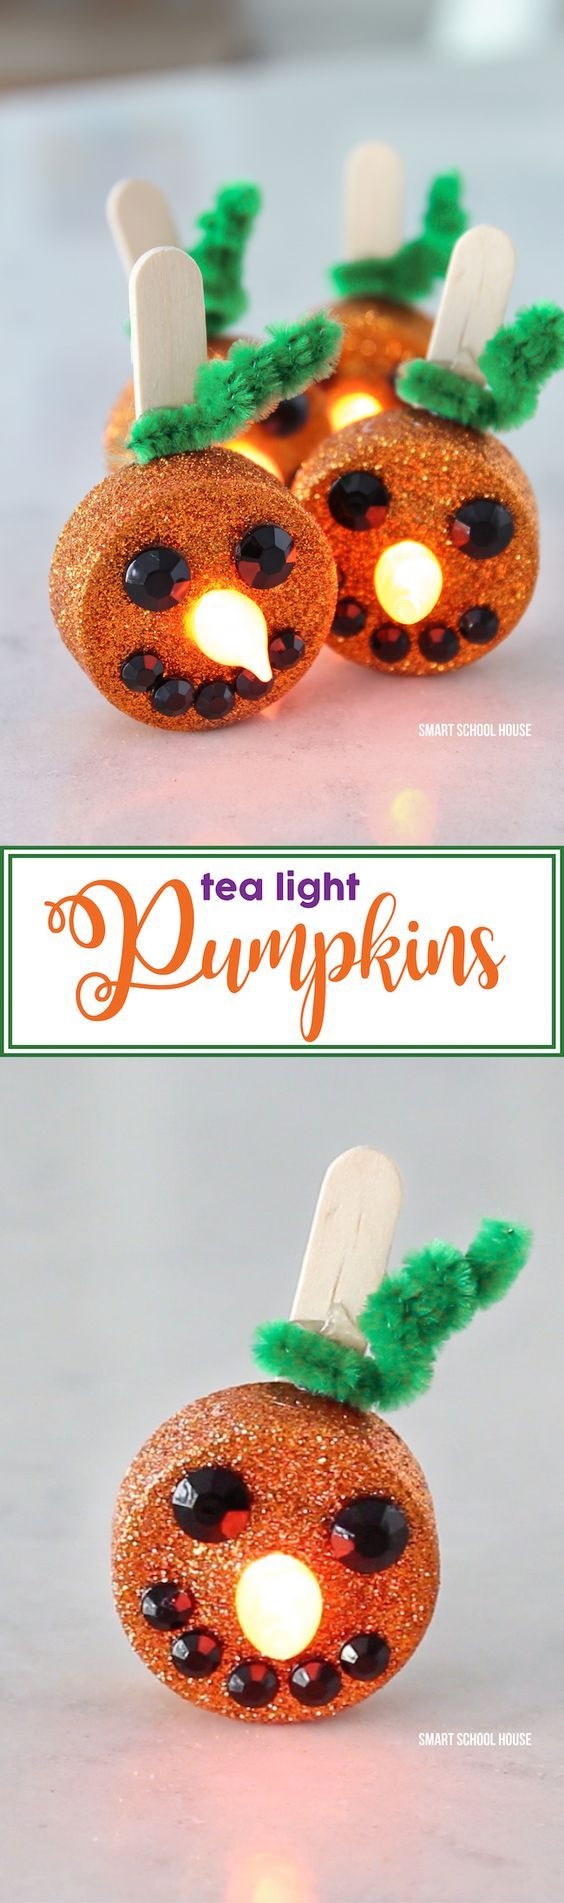 Tea Light Pumpkins - little orange flameless tea lights that stand